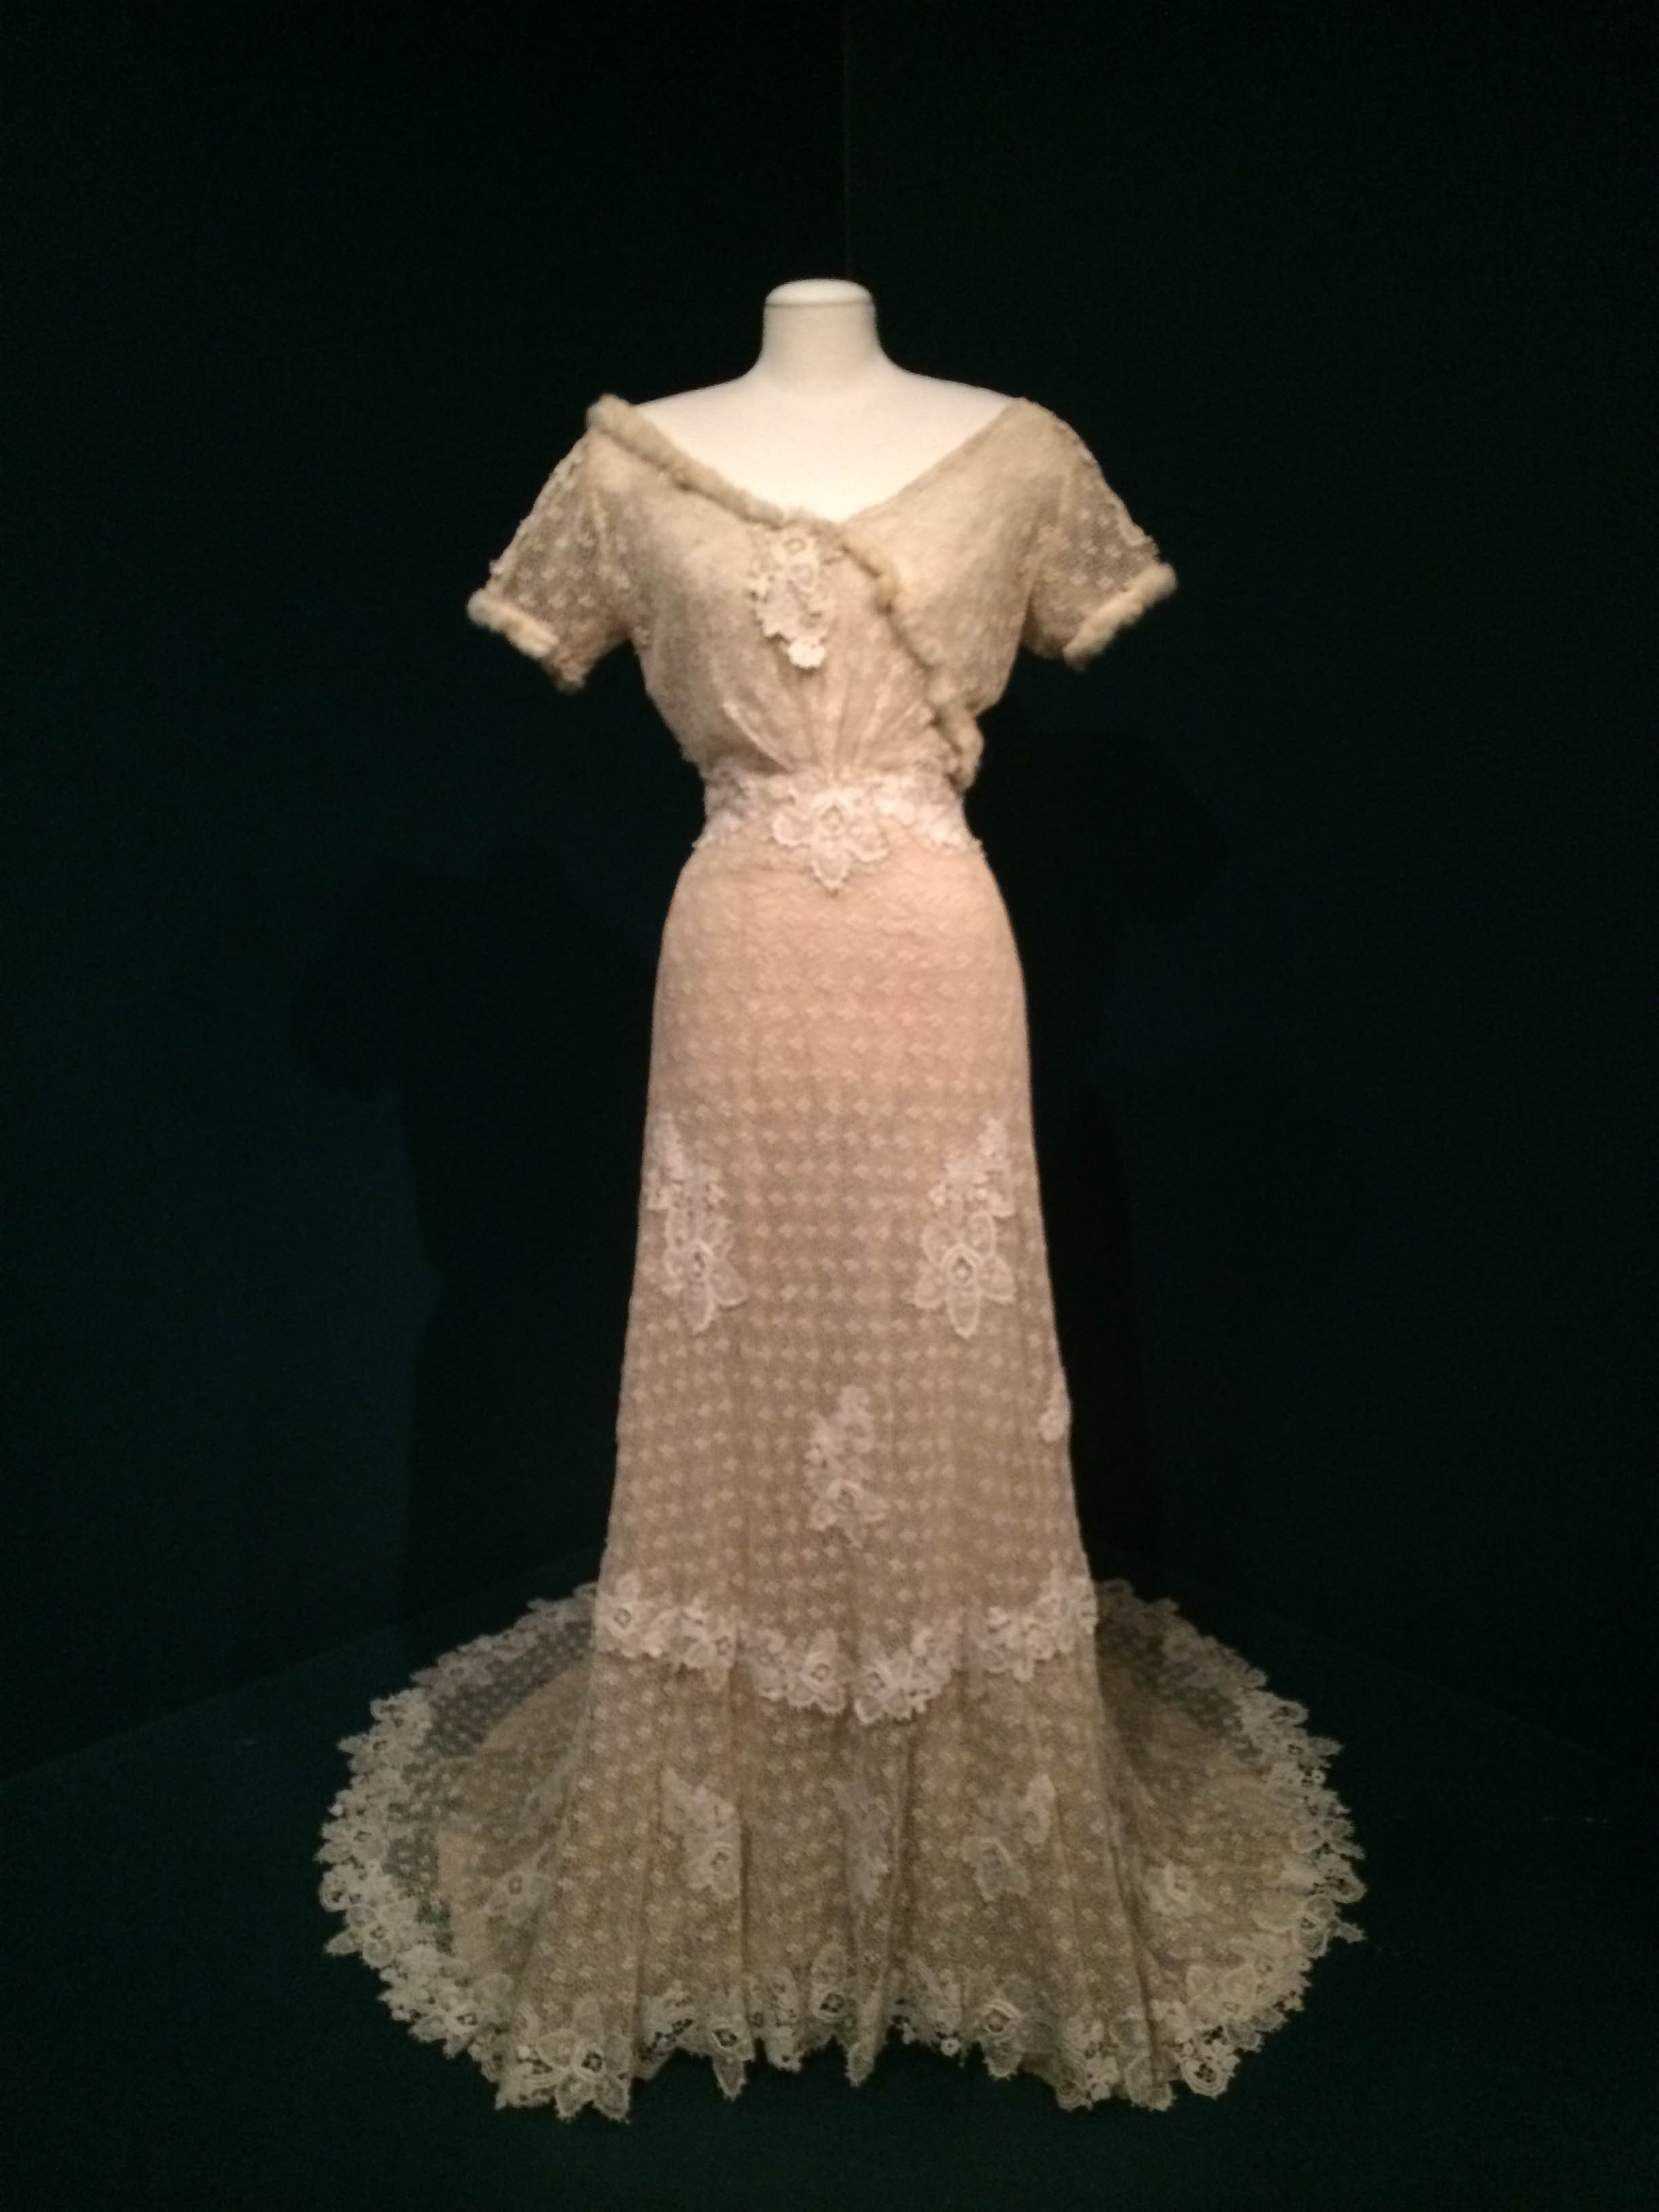 """Wedding Dress"" (1920-1930), Cincinnati, Ohio. Cotton, crepe, fur, and silk. Collection of the Art Fund, Inc. at the BMA. Gift of Mr. and Mrs. Charles Ireland. AFI19.1982.70."